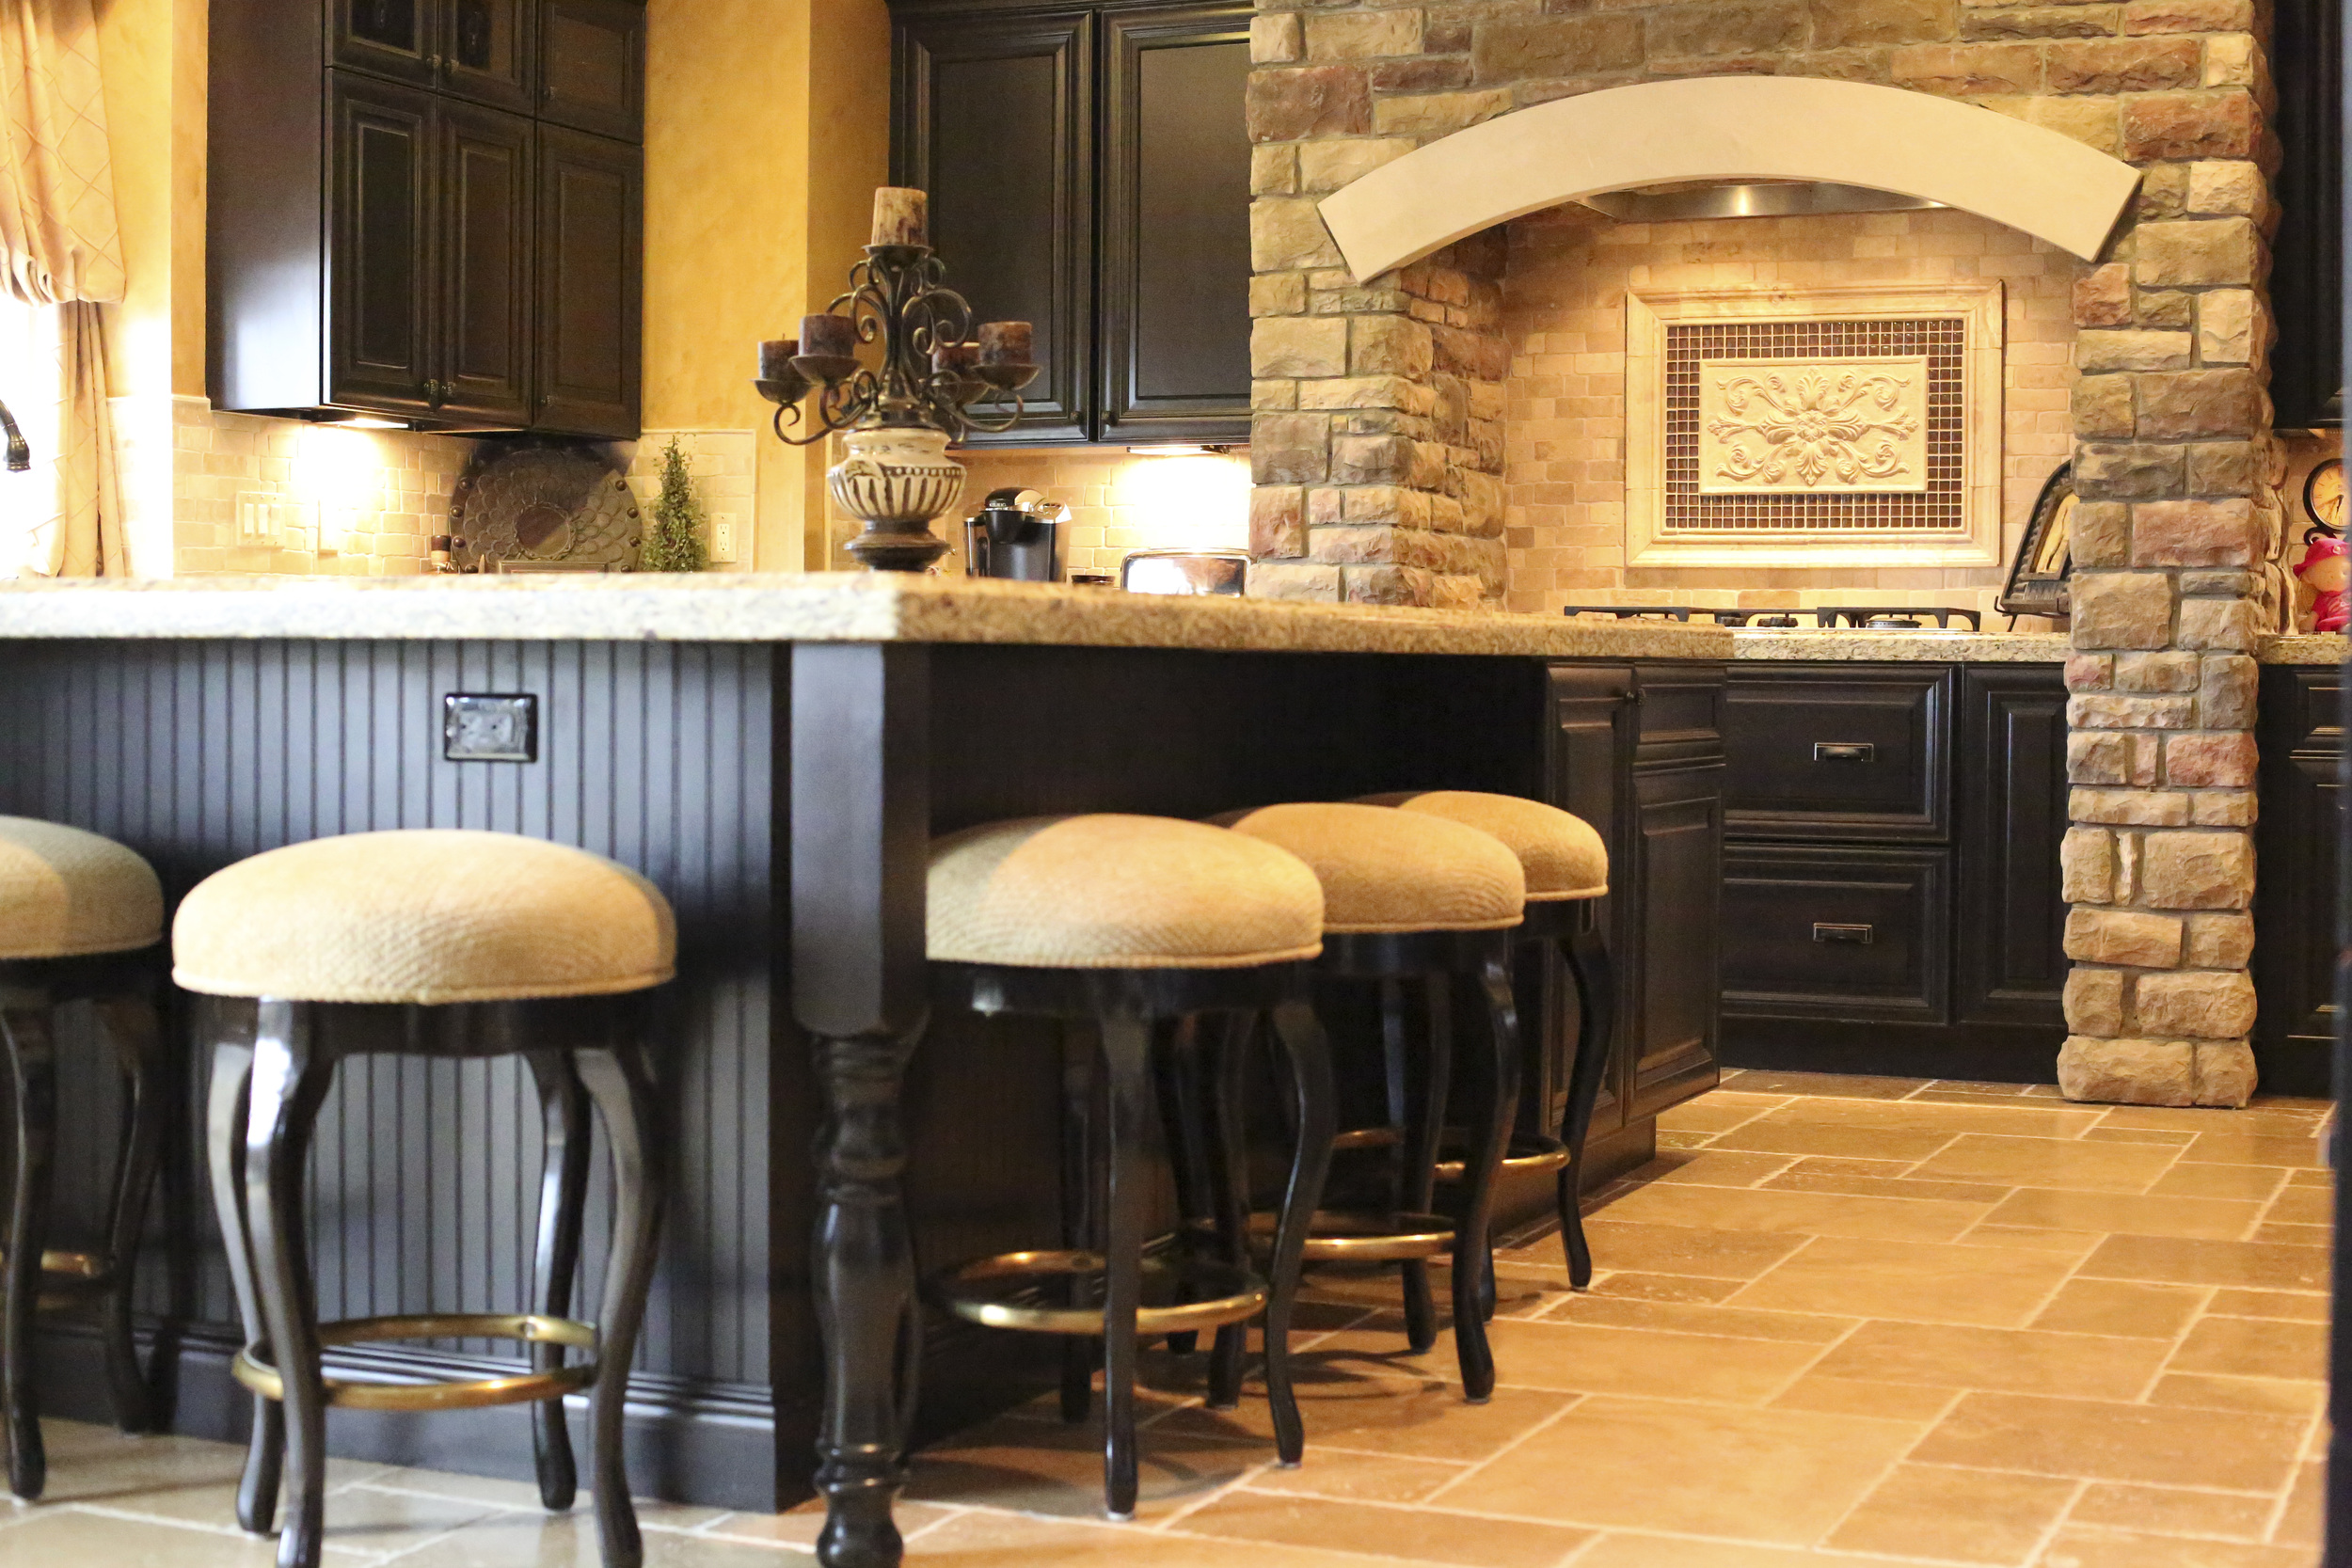 Building relationships one custom home at a time. General Contracting in the Fenton, South Lyon, Novi, Canton, Clarkston, Orion, and other Southwest Michigan areas Custom Dedication